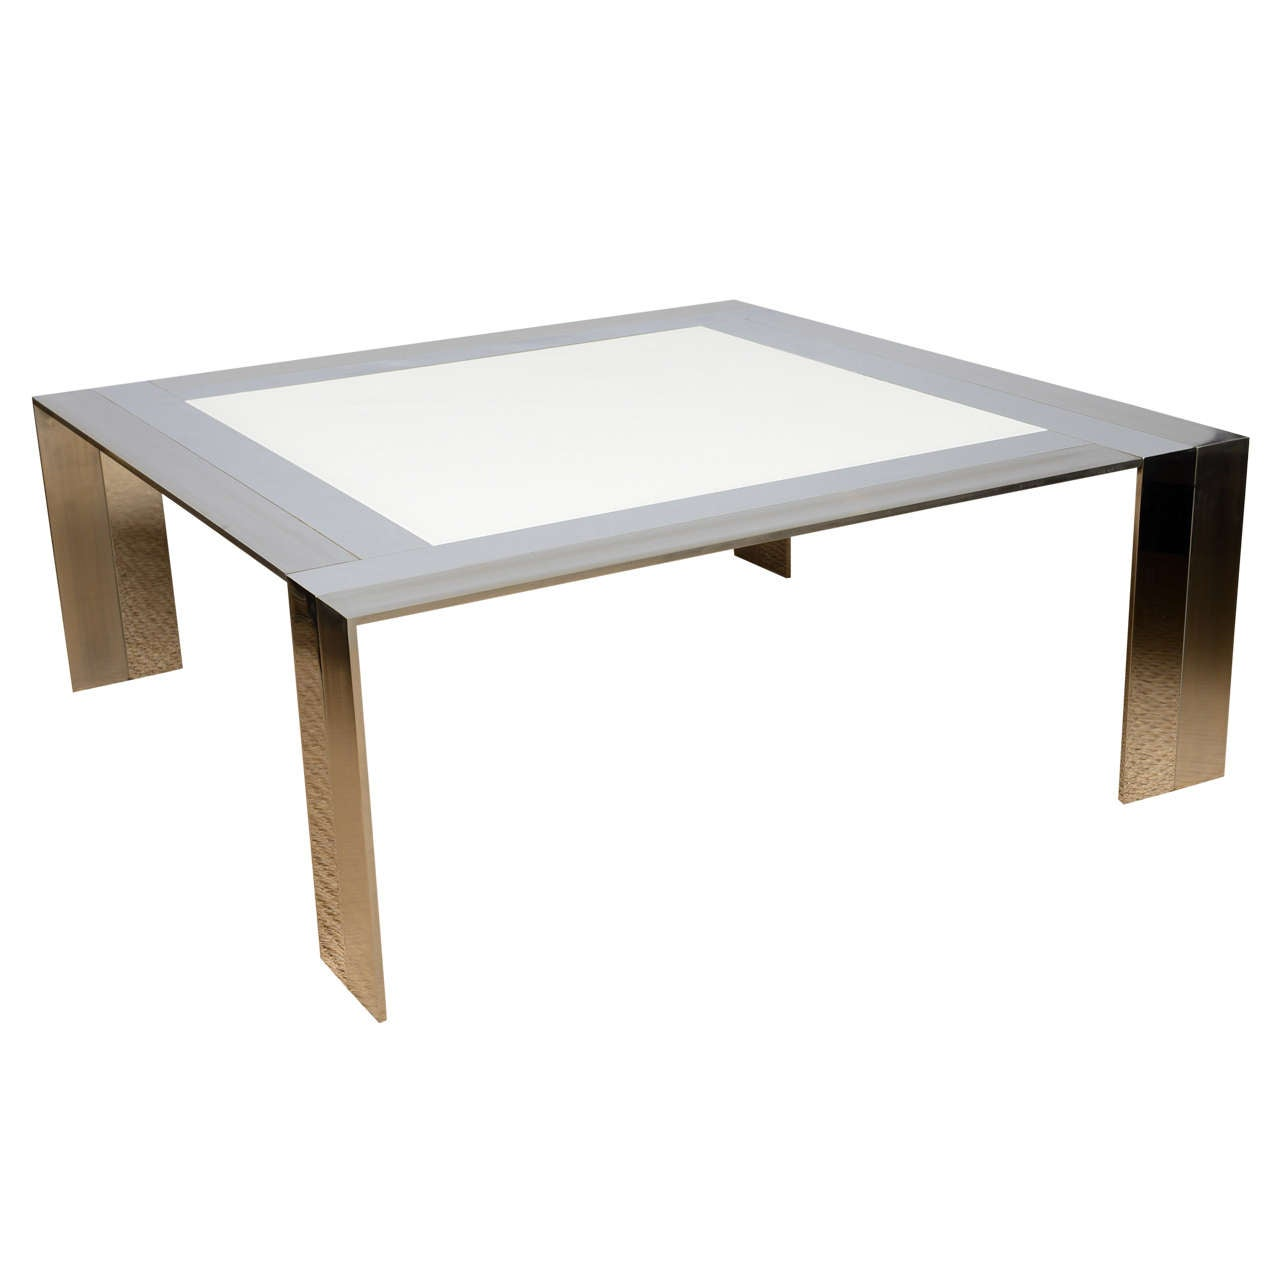 Italian Square Stainless Steel And White Glass Square Cocktail Table For Sale At 1stdibs: metal square coffee table